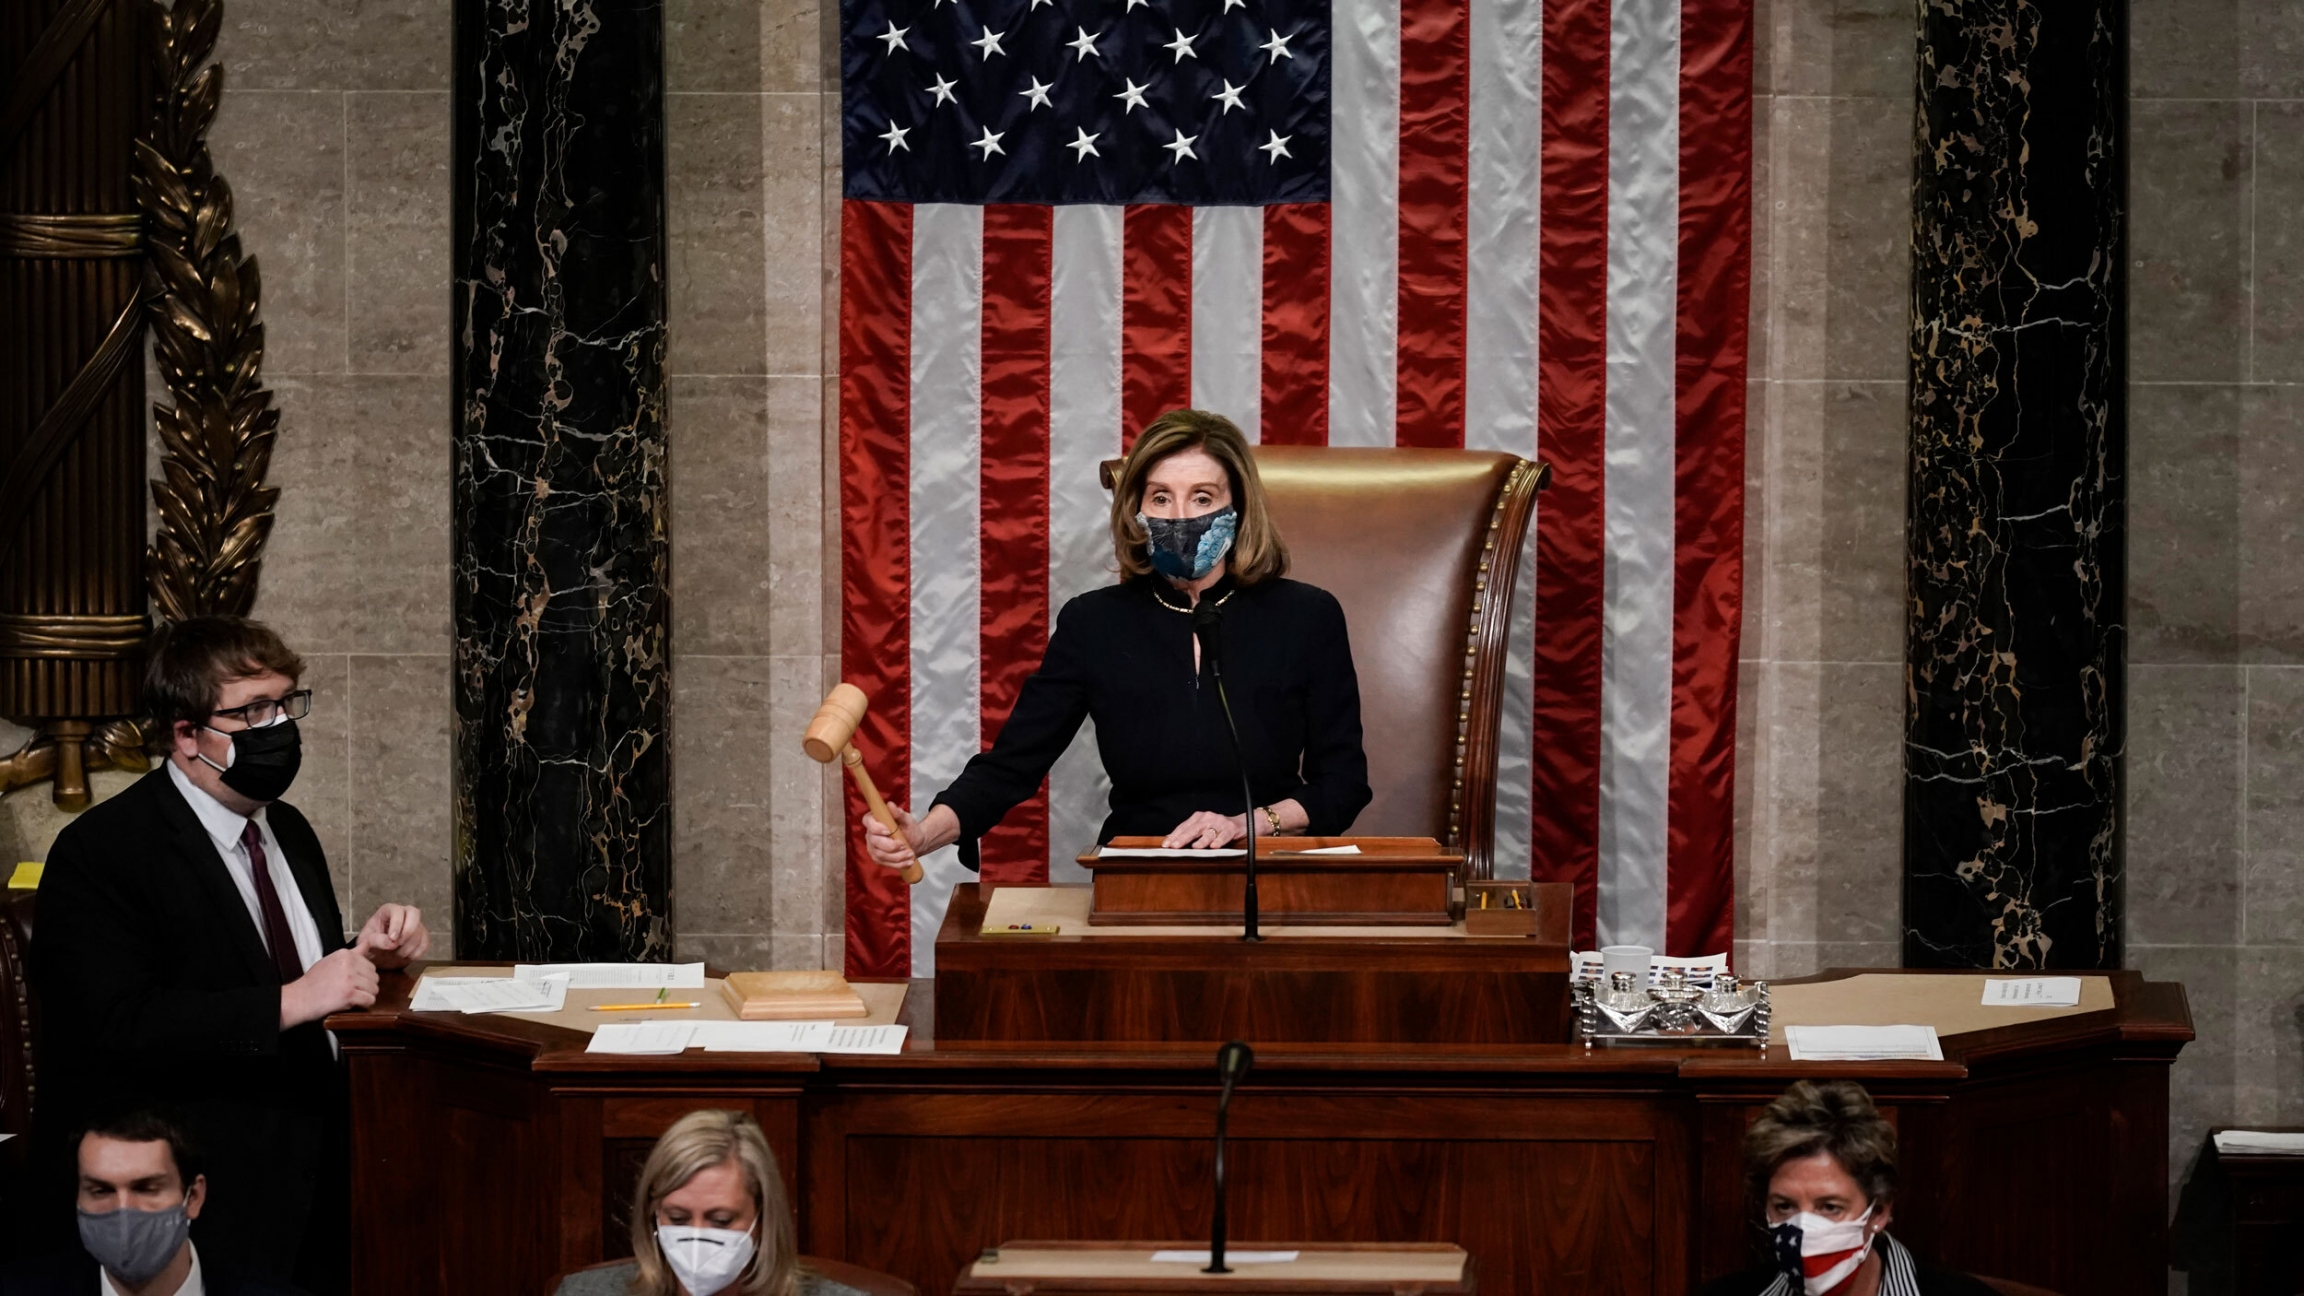 Speaker of the House Nancy Pelosigavels in the final vote of the impeachment of President Donald Trump